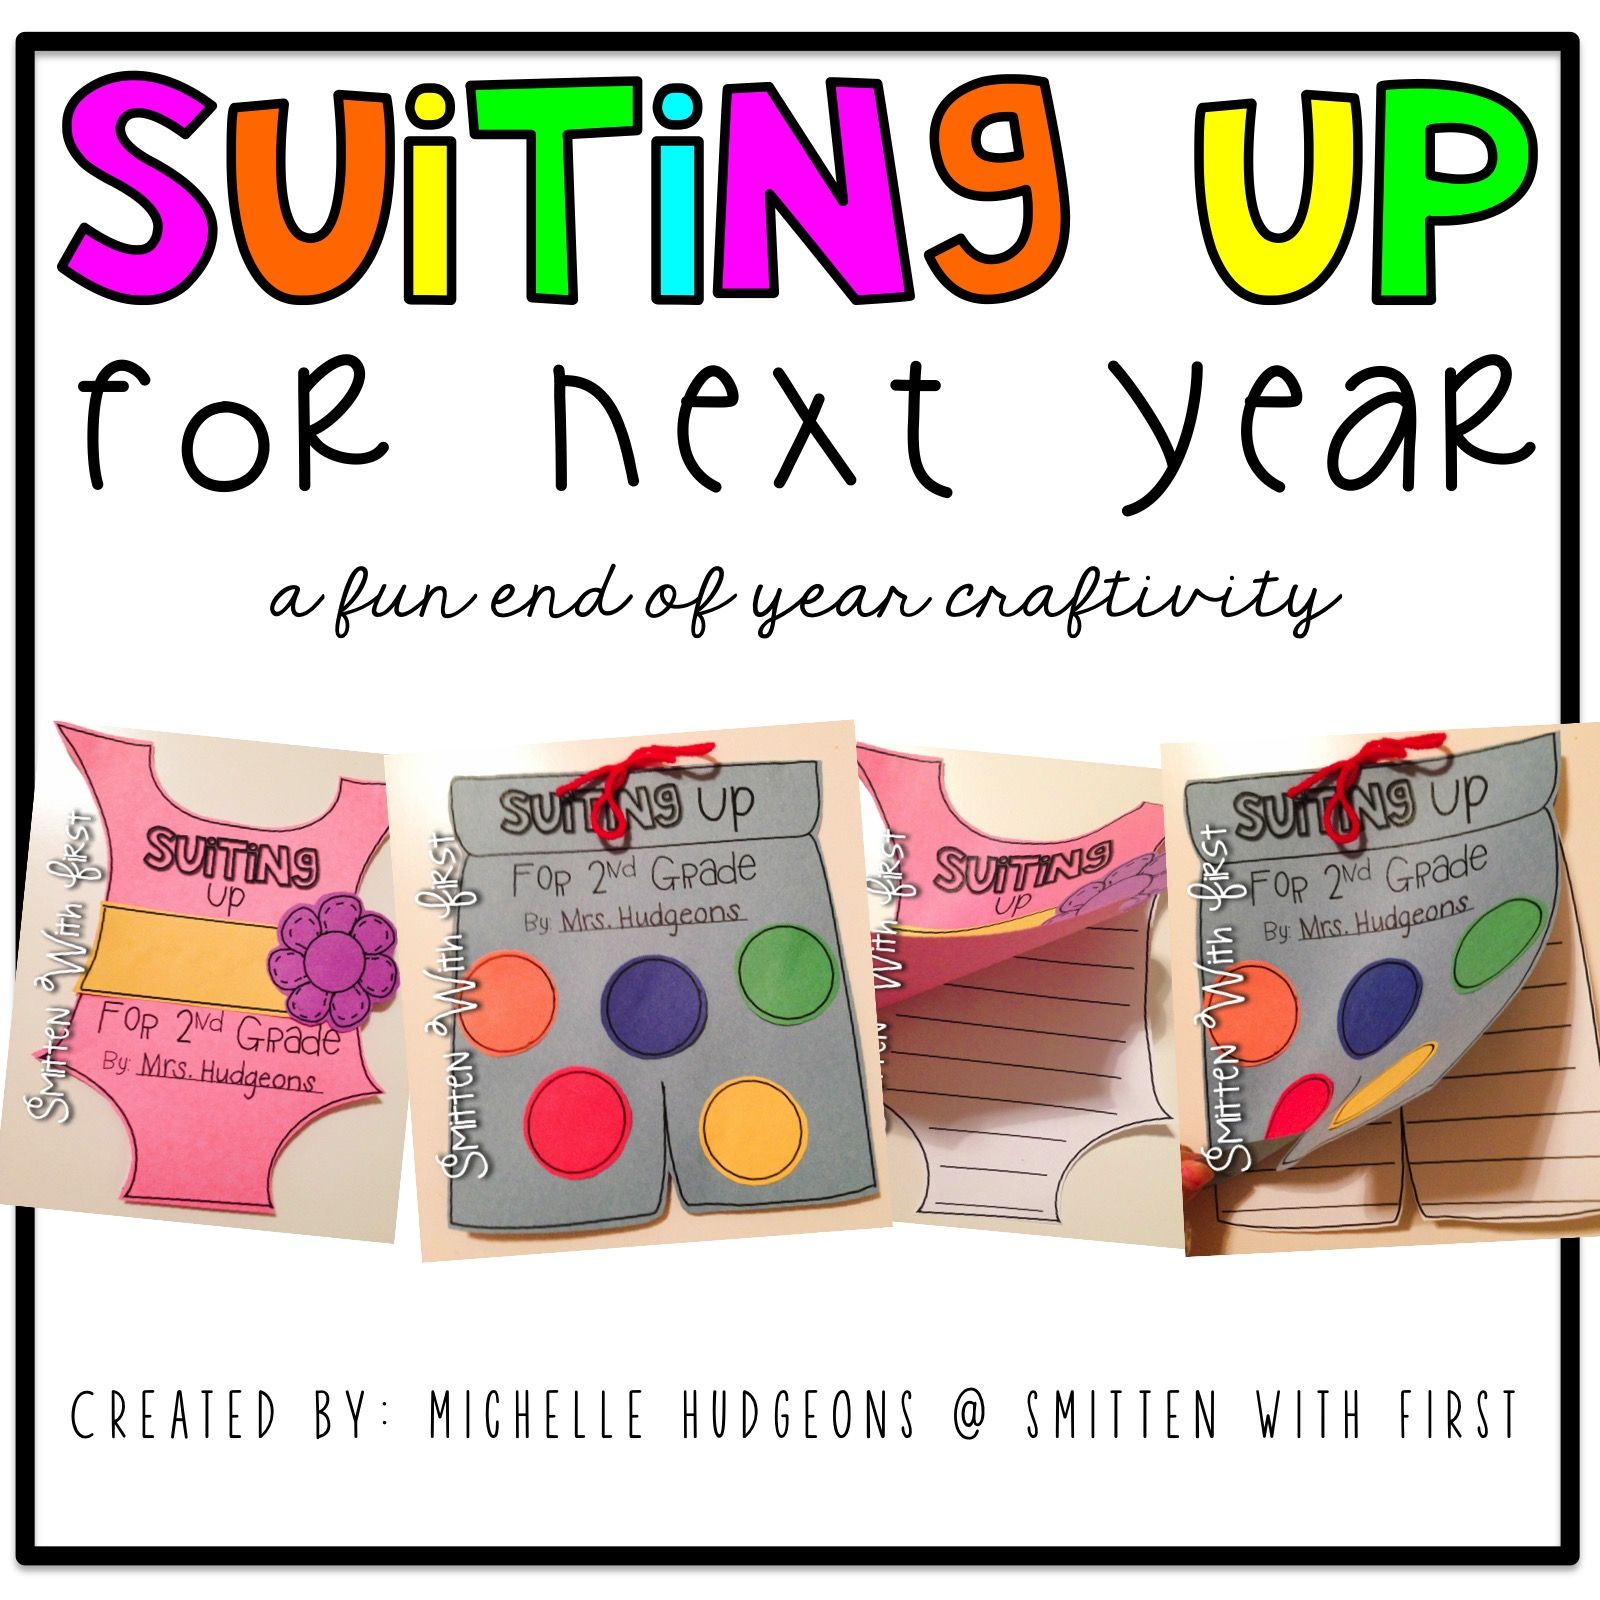 Blog Hoppin': Suiting Up for Next Year!